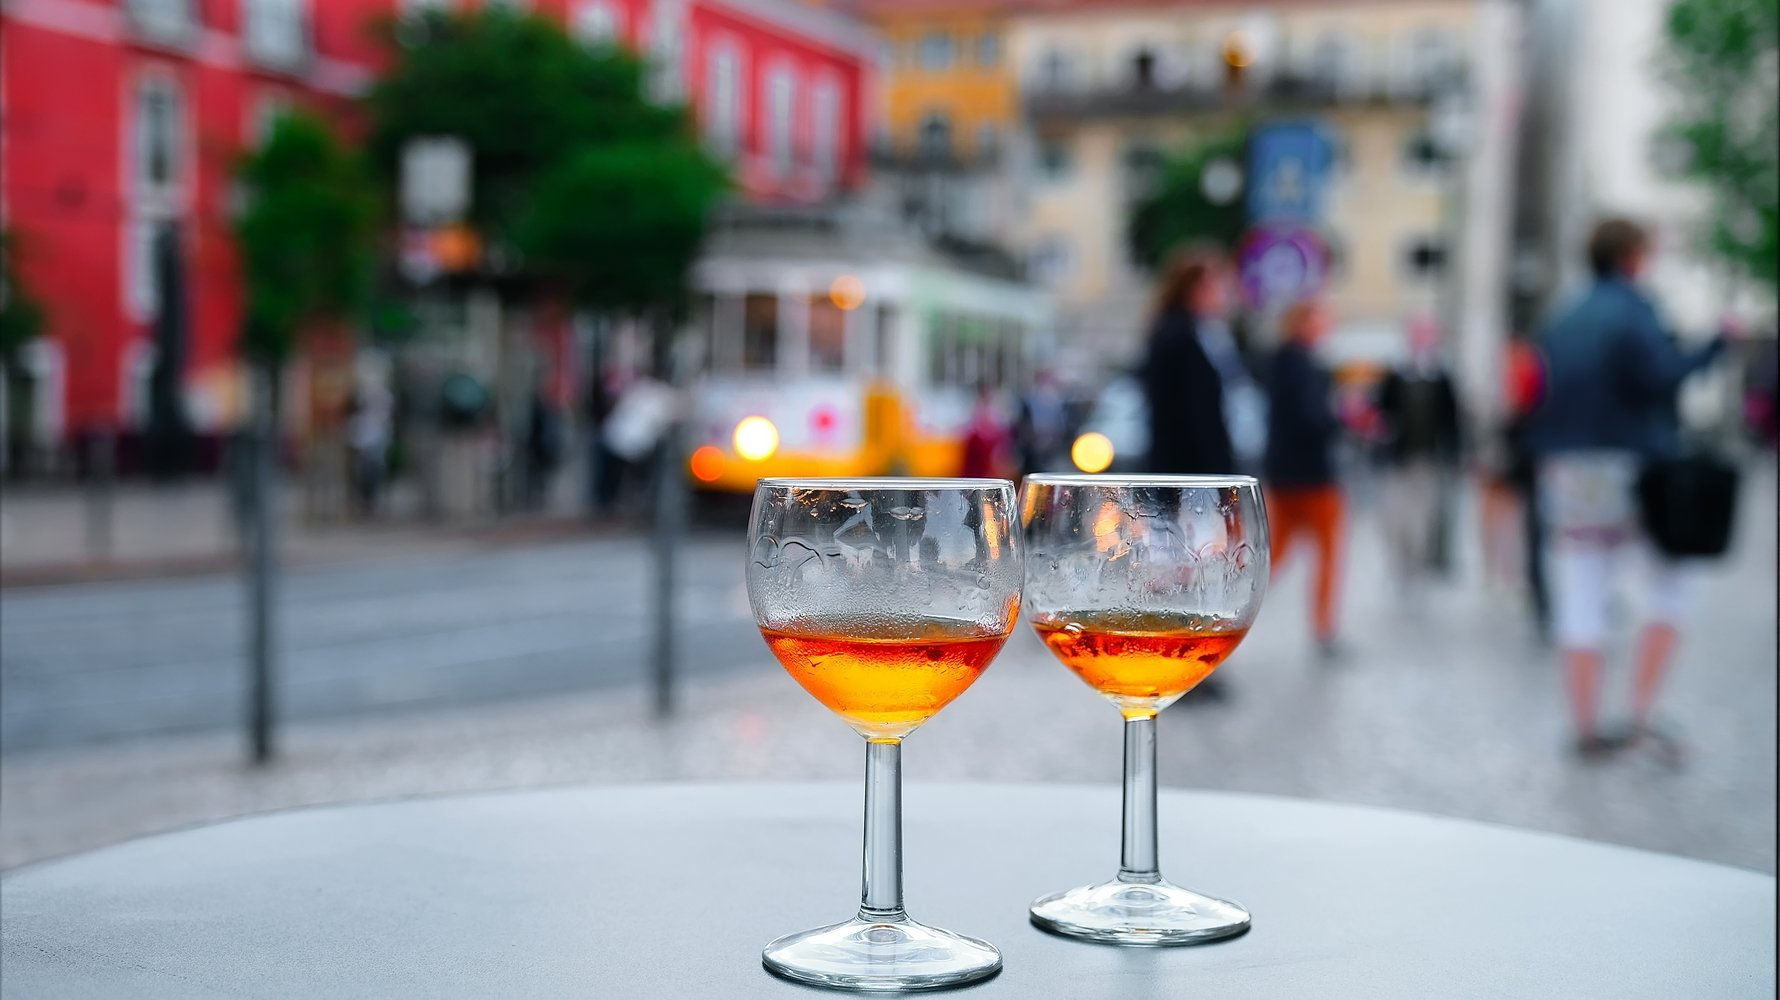 © ver0nicka Shutterstock.com Port wine glasses in the cafe of Lisbon, Portugal